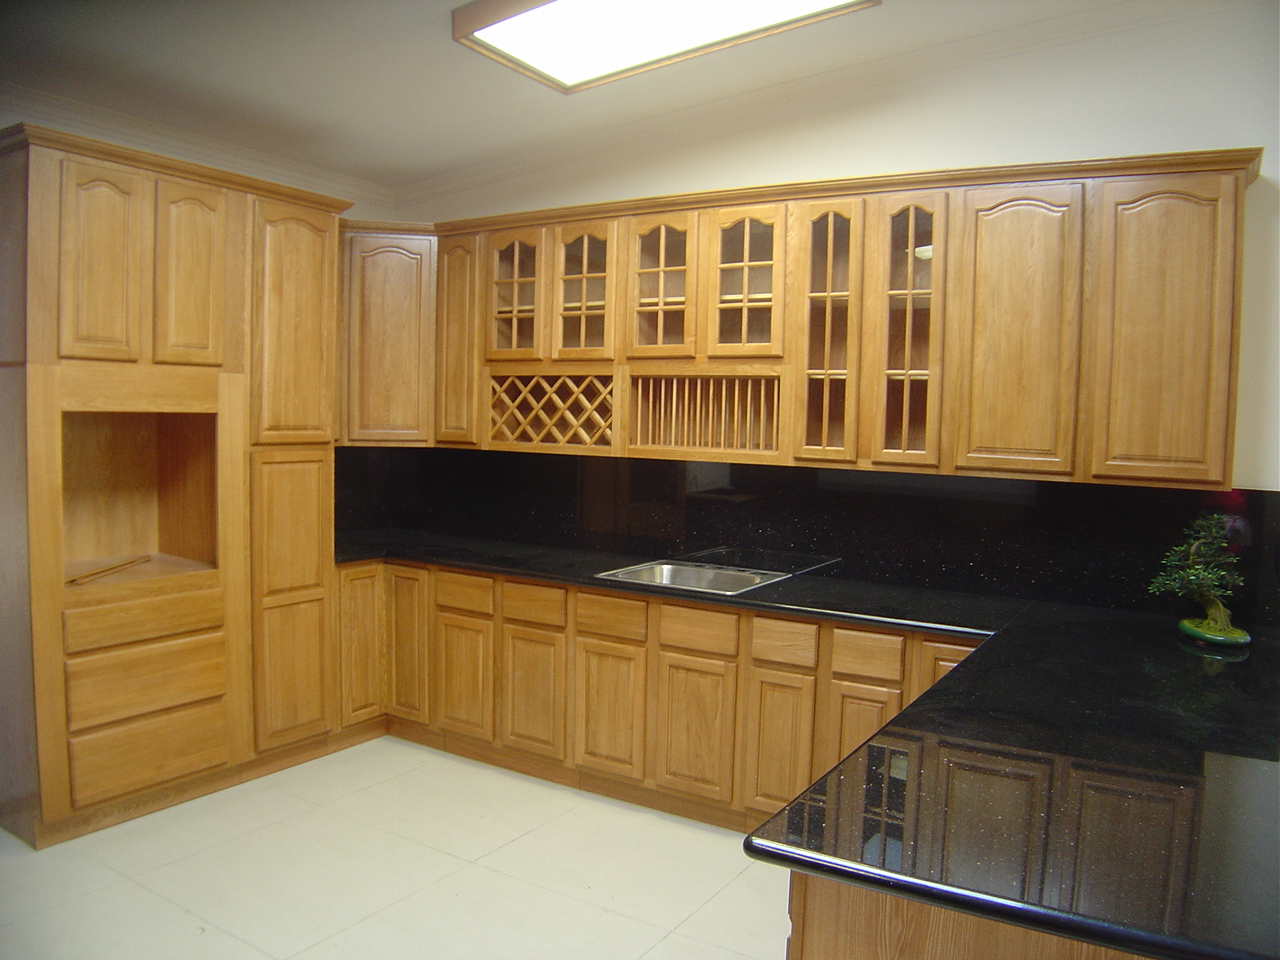 Oak kitchen cabinets for your interior kitchen minimalist for Interior designs kitchen